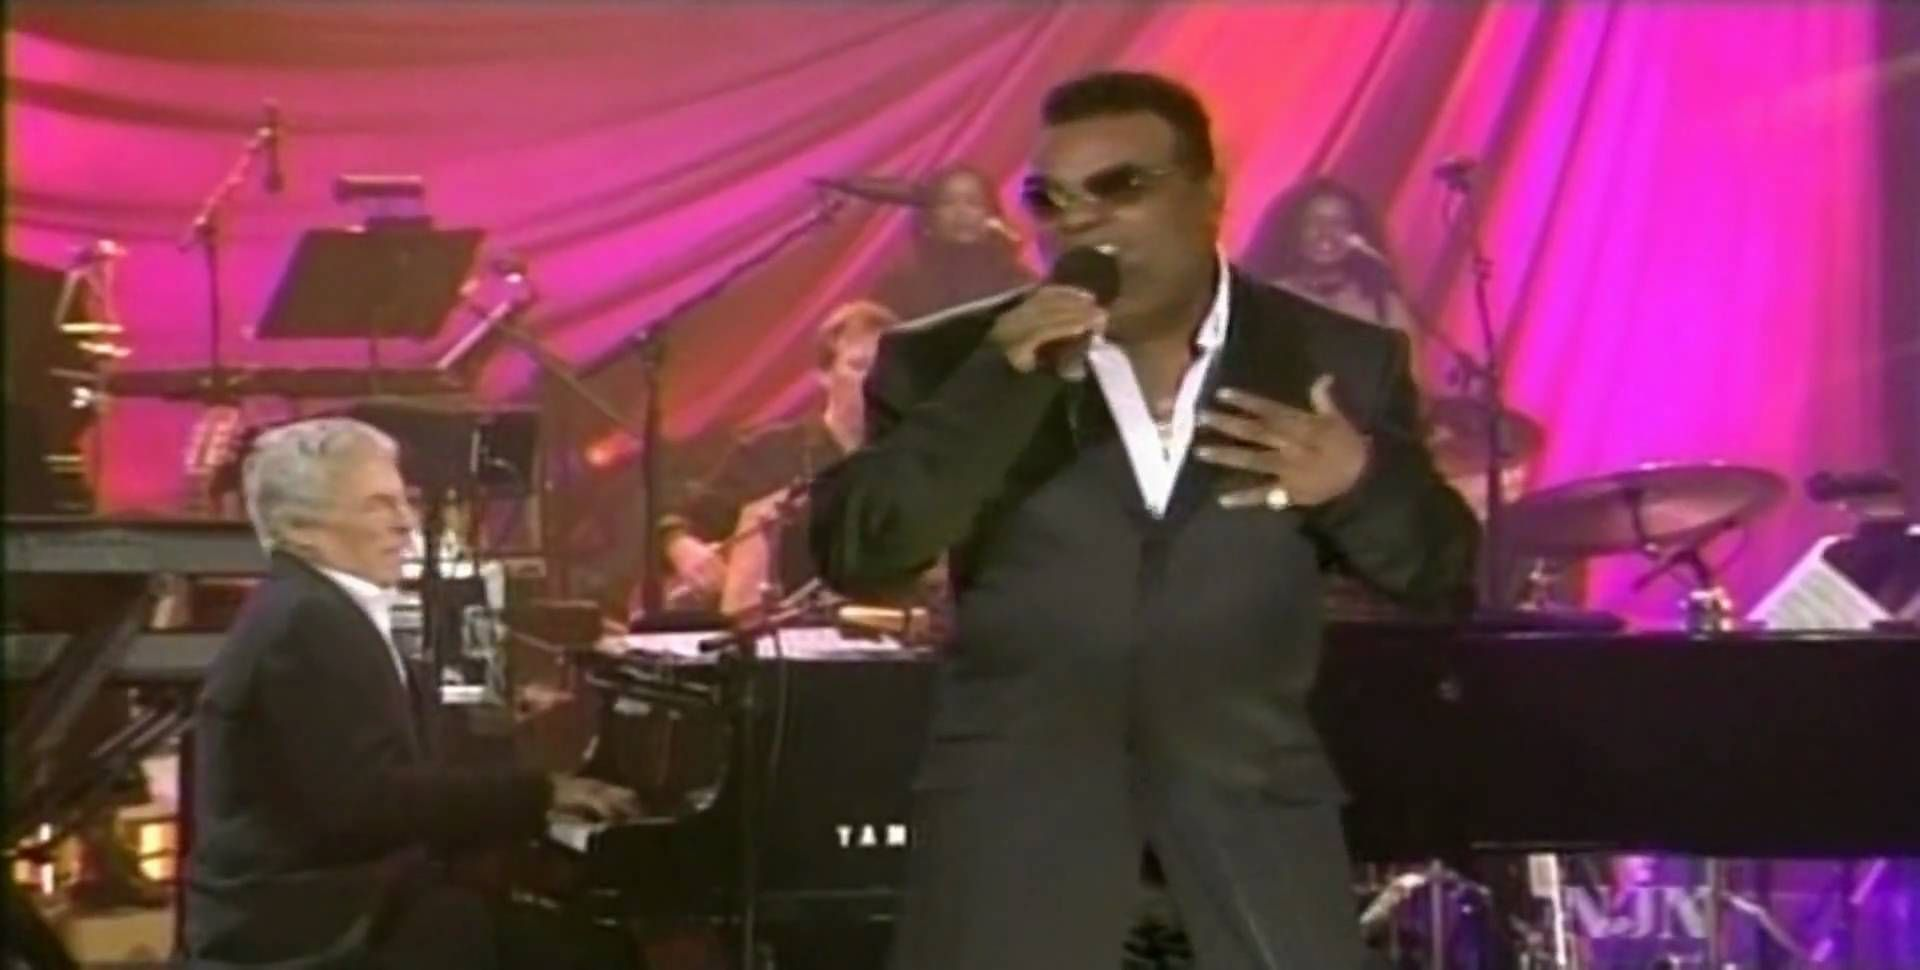 """Ronald Isley & Burt Bacharach - """"This Guy's in Love with You"""" - Soundstage, July, 2004"""